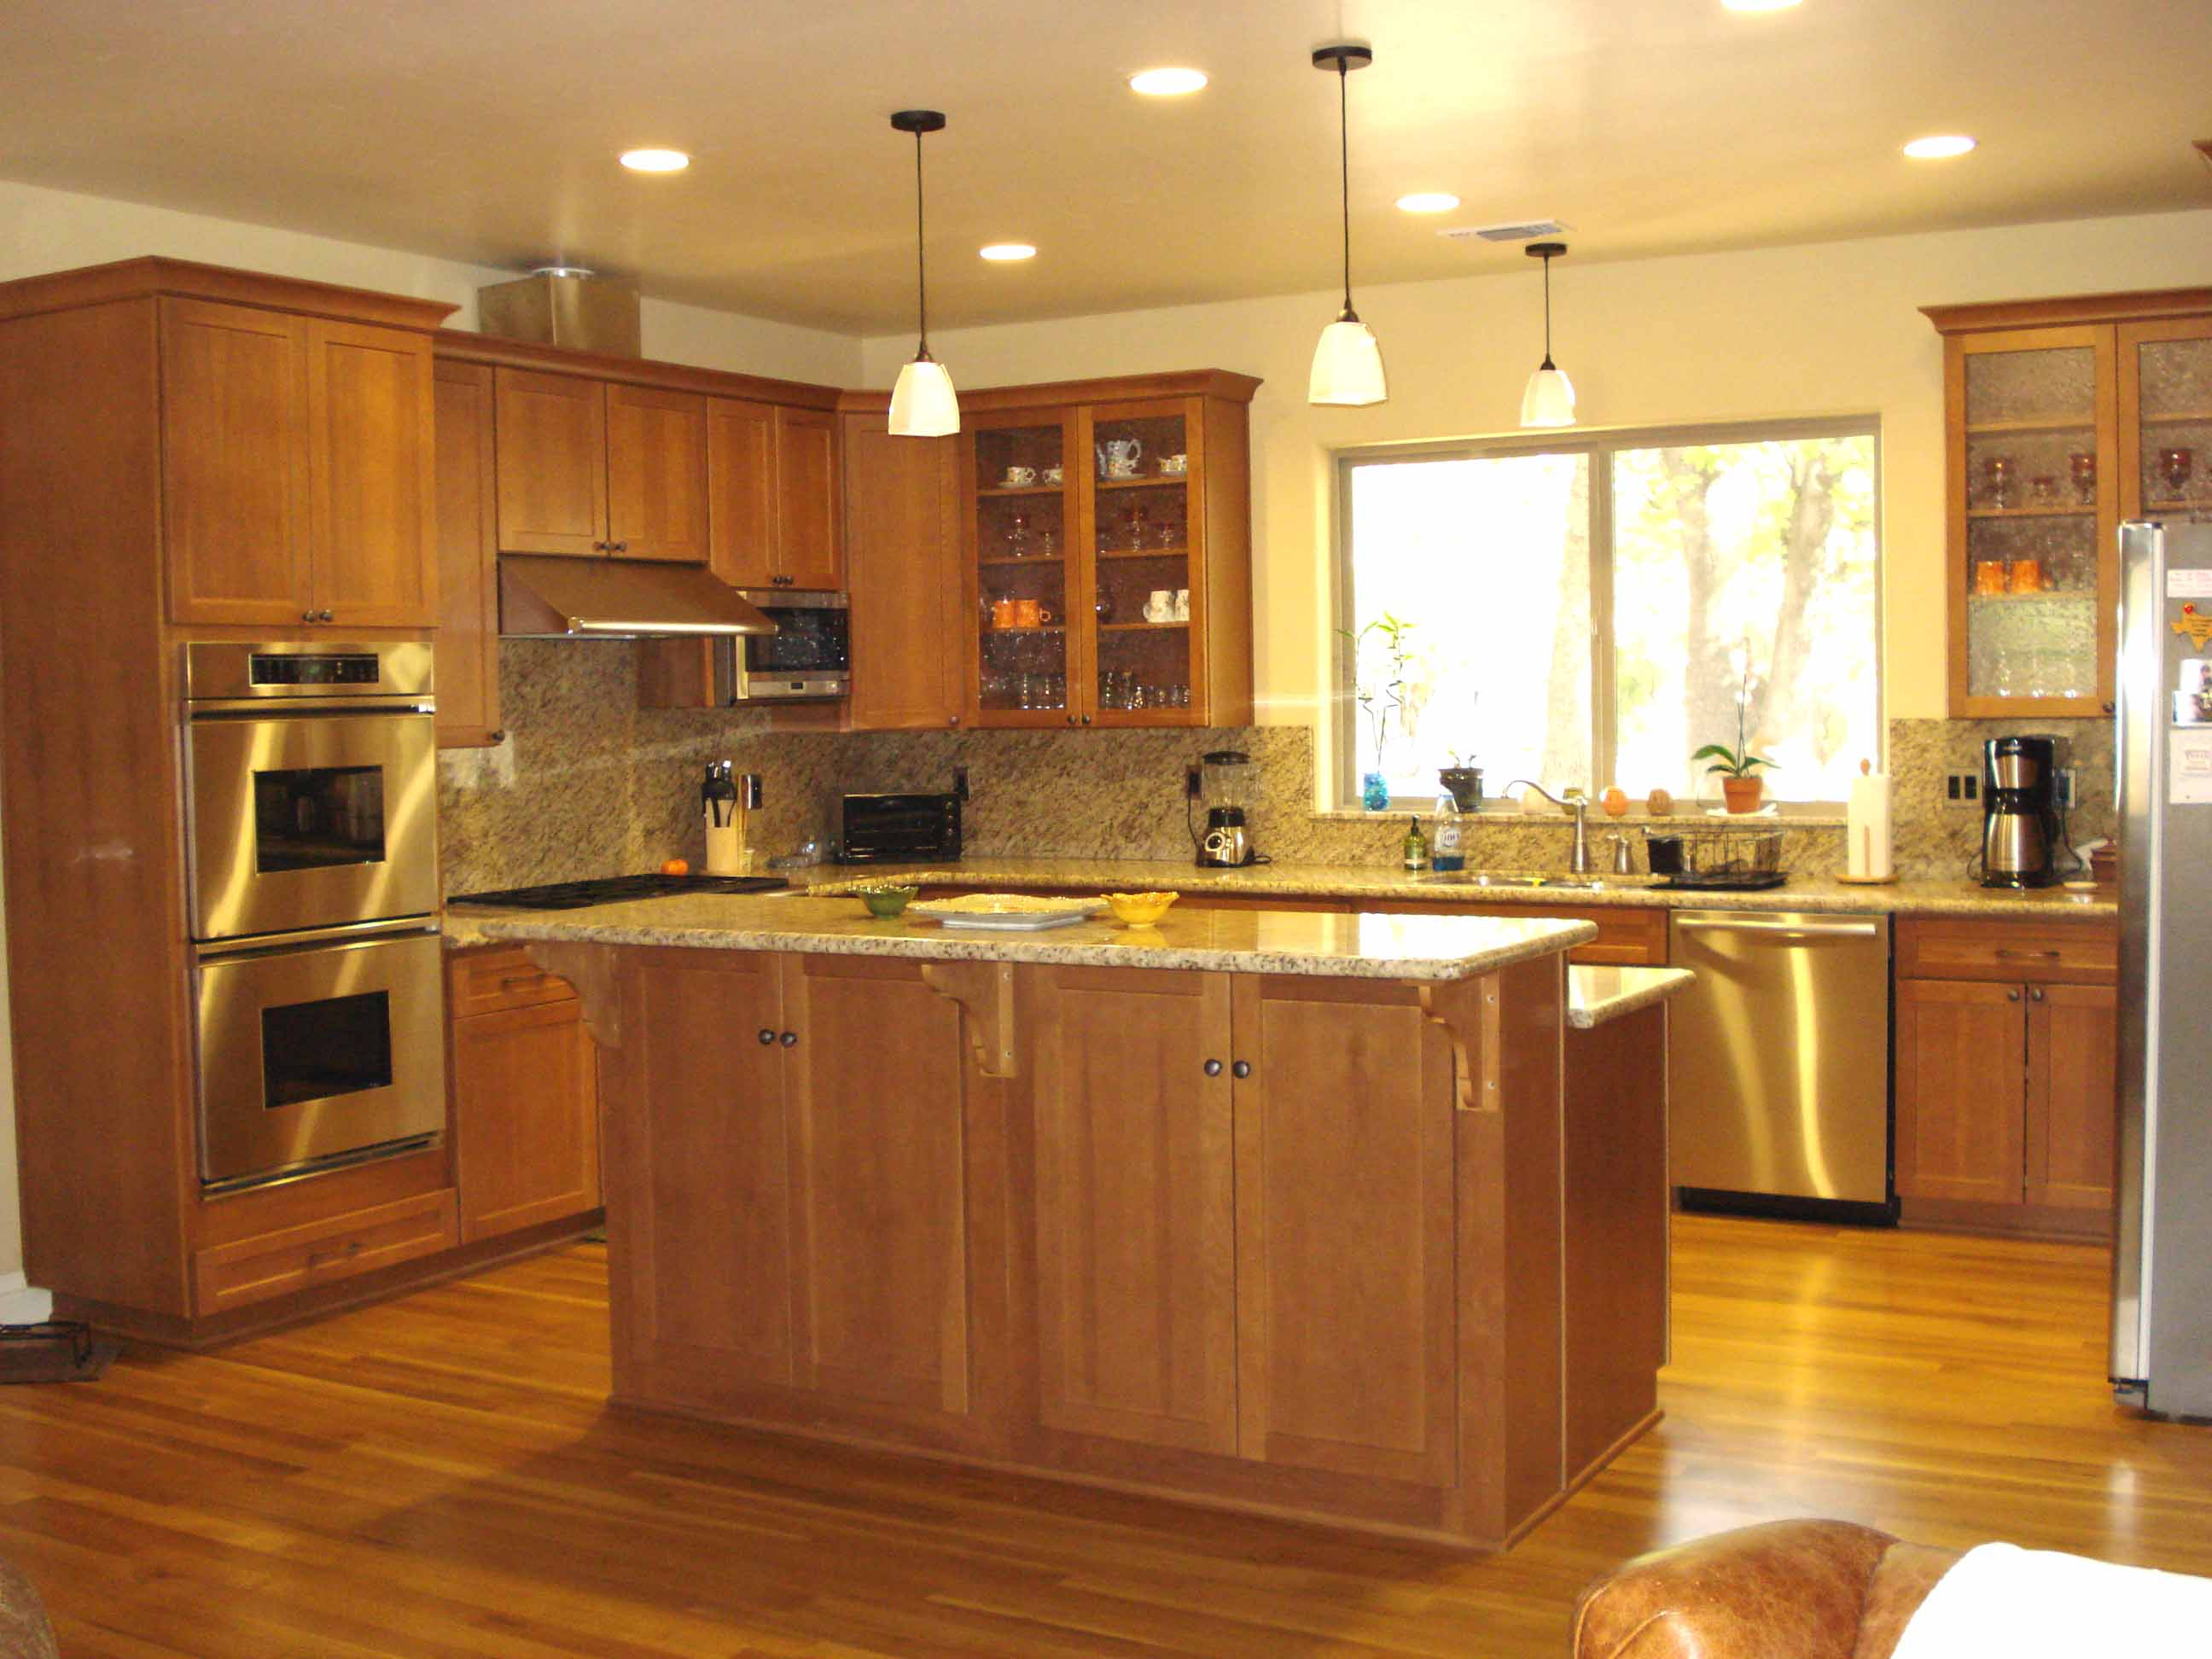 Craftsman style kitchen with light brown cabinets and cream counter tops